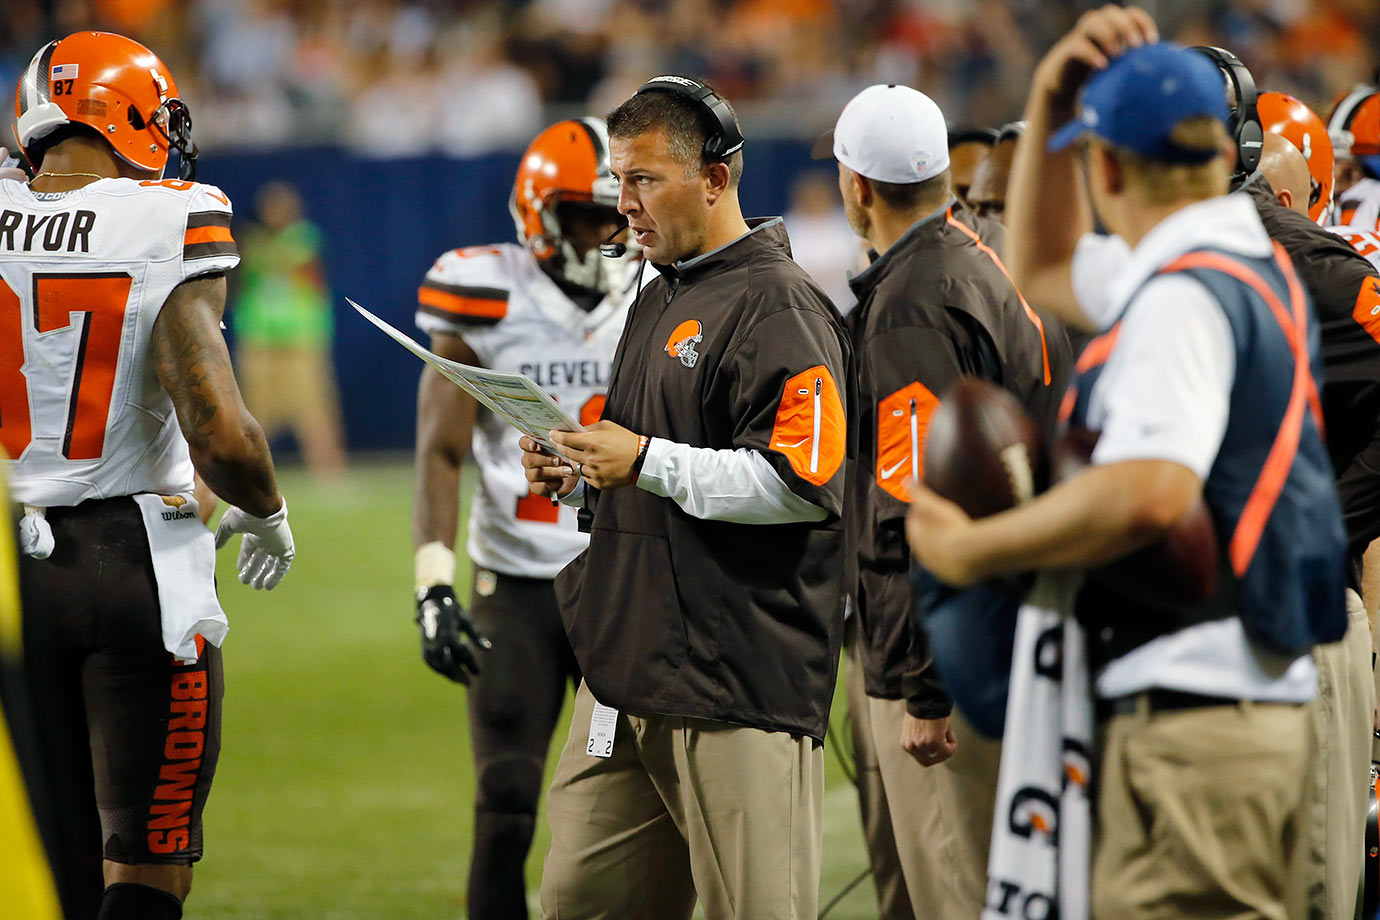 In 11 of the past 12 seasons, the Browns offense has ranked 24th or worse. But don't worry – they brought in John DeFilippo as their new offensive coordinator. Then again, he's the sixth Browns offensive coordinator to hold that title over the past six years. Just one away from being the Lucky No. 7!